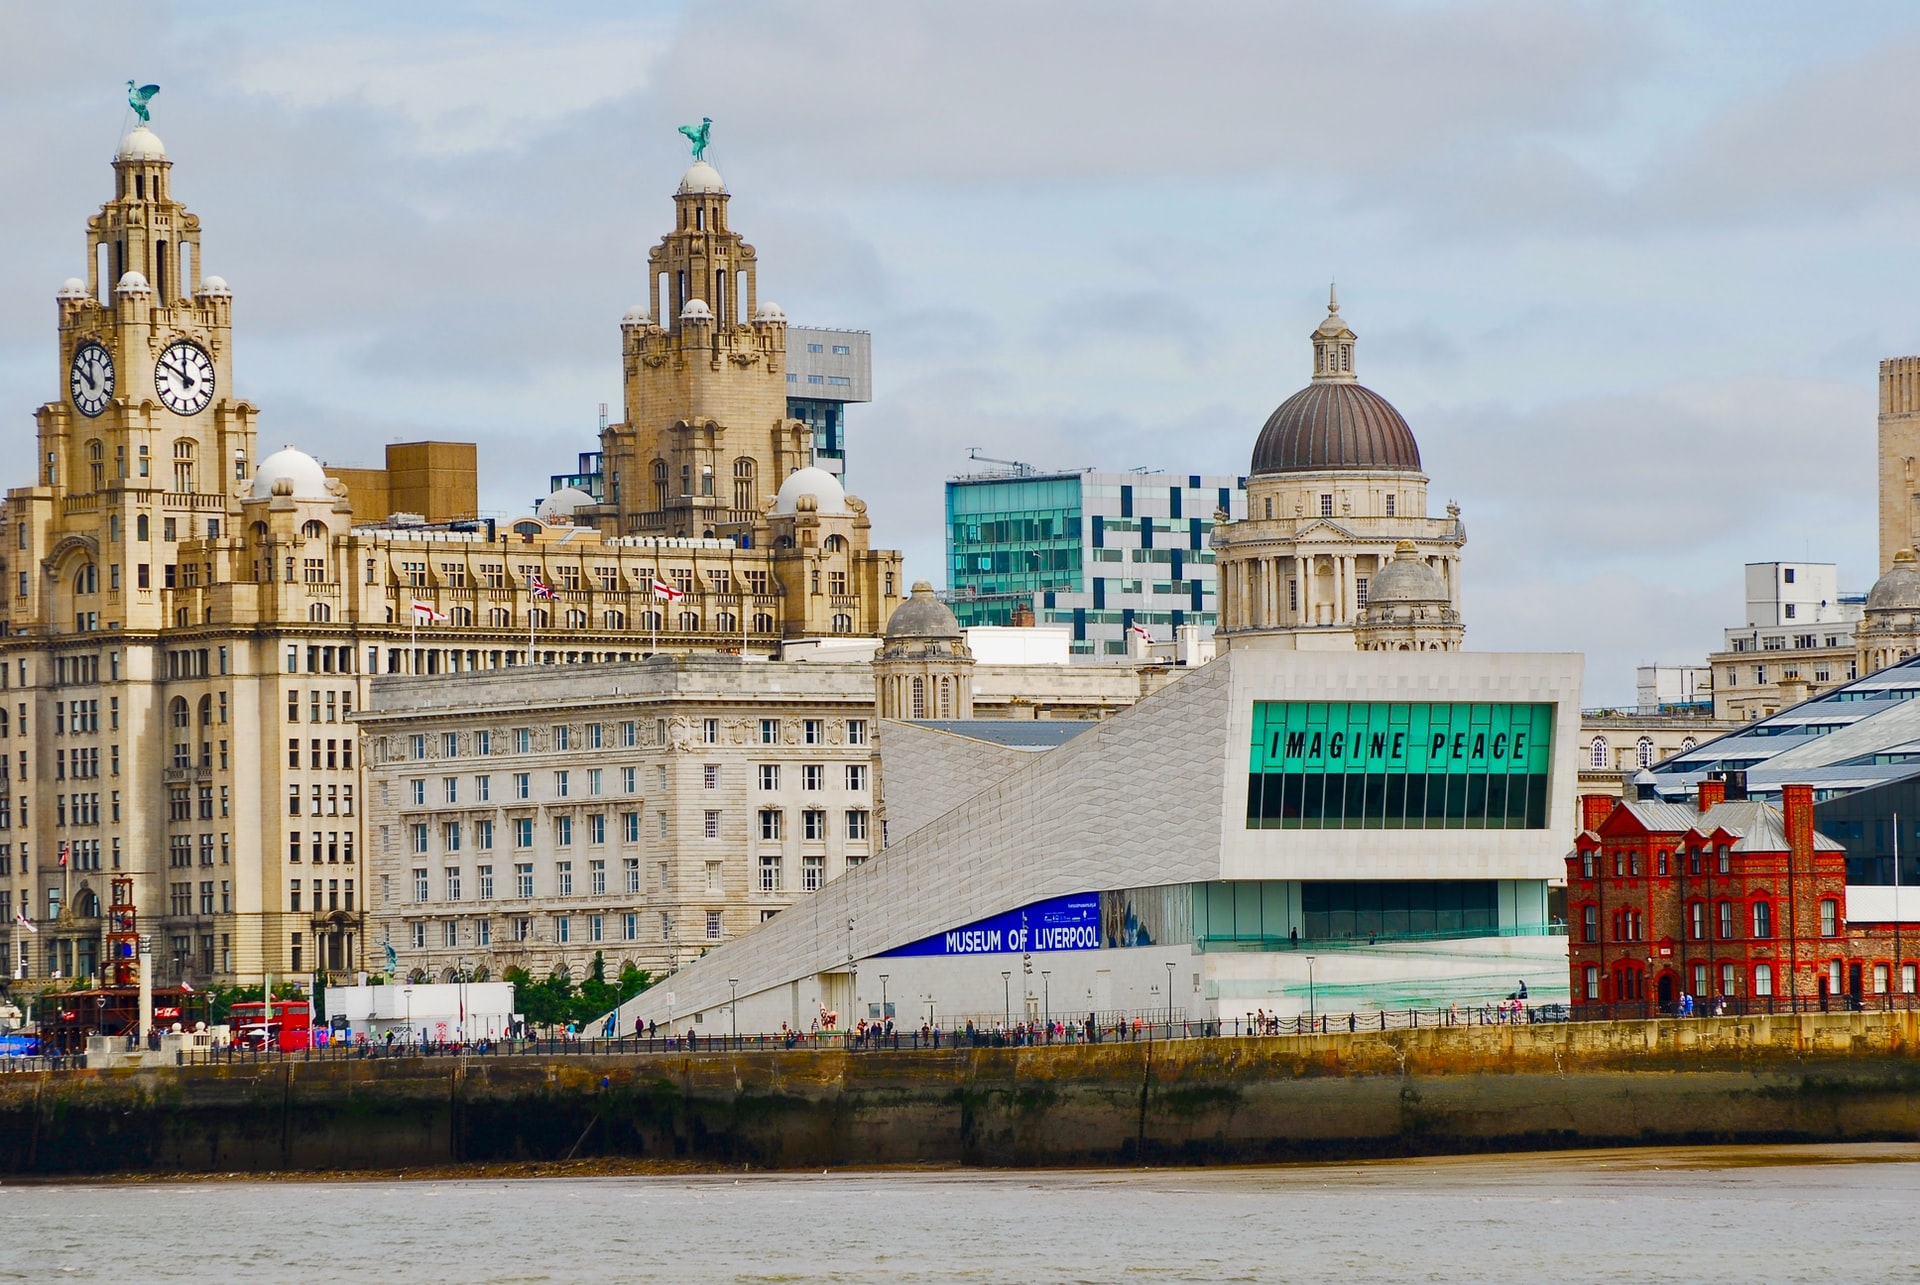 museum-of-liverpool-and-river-from-across-the-city-on-a-cloudy-day